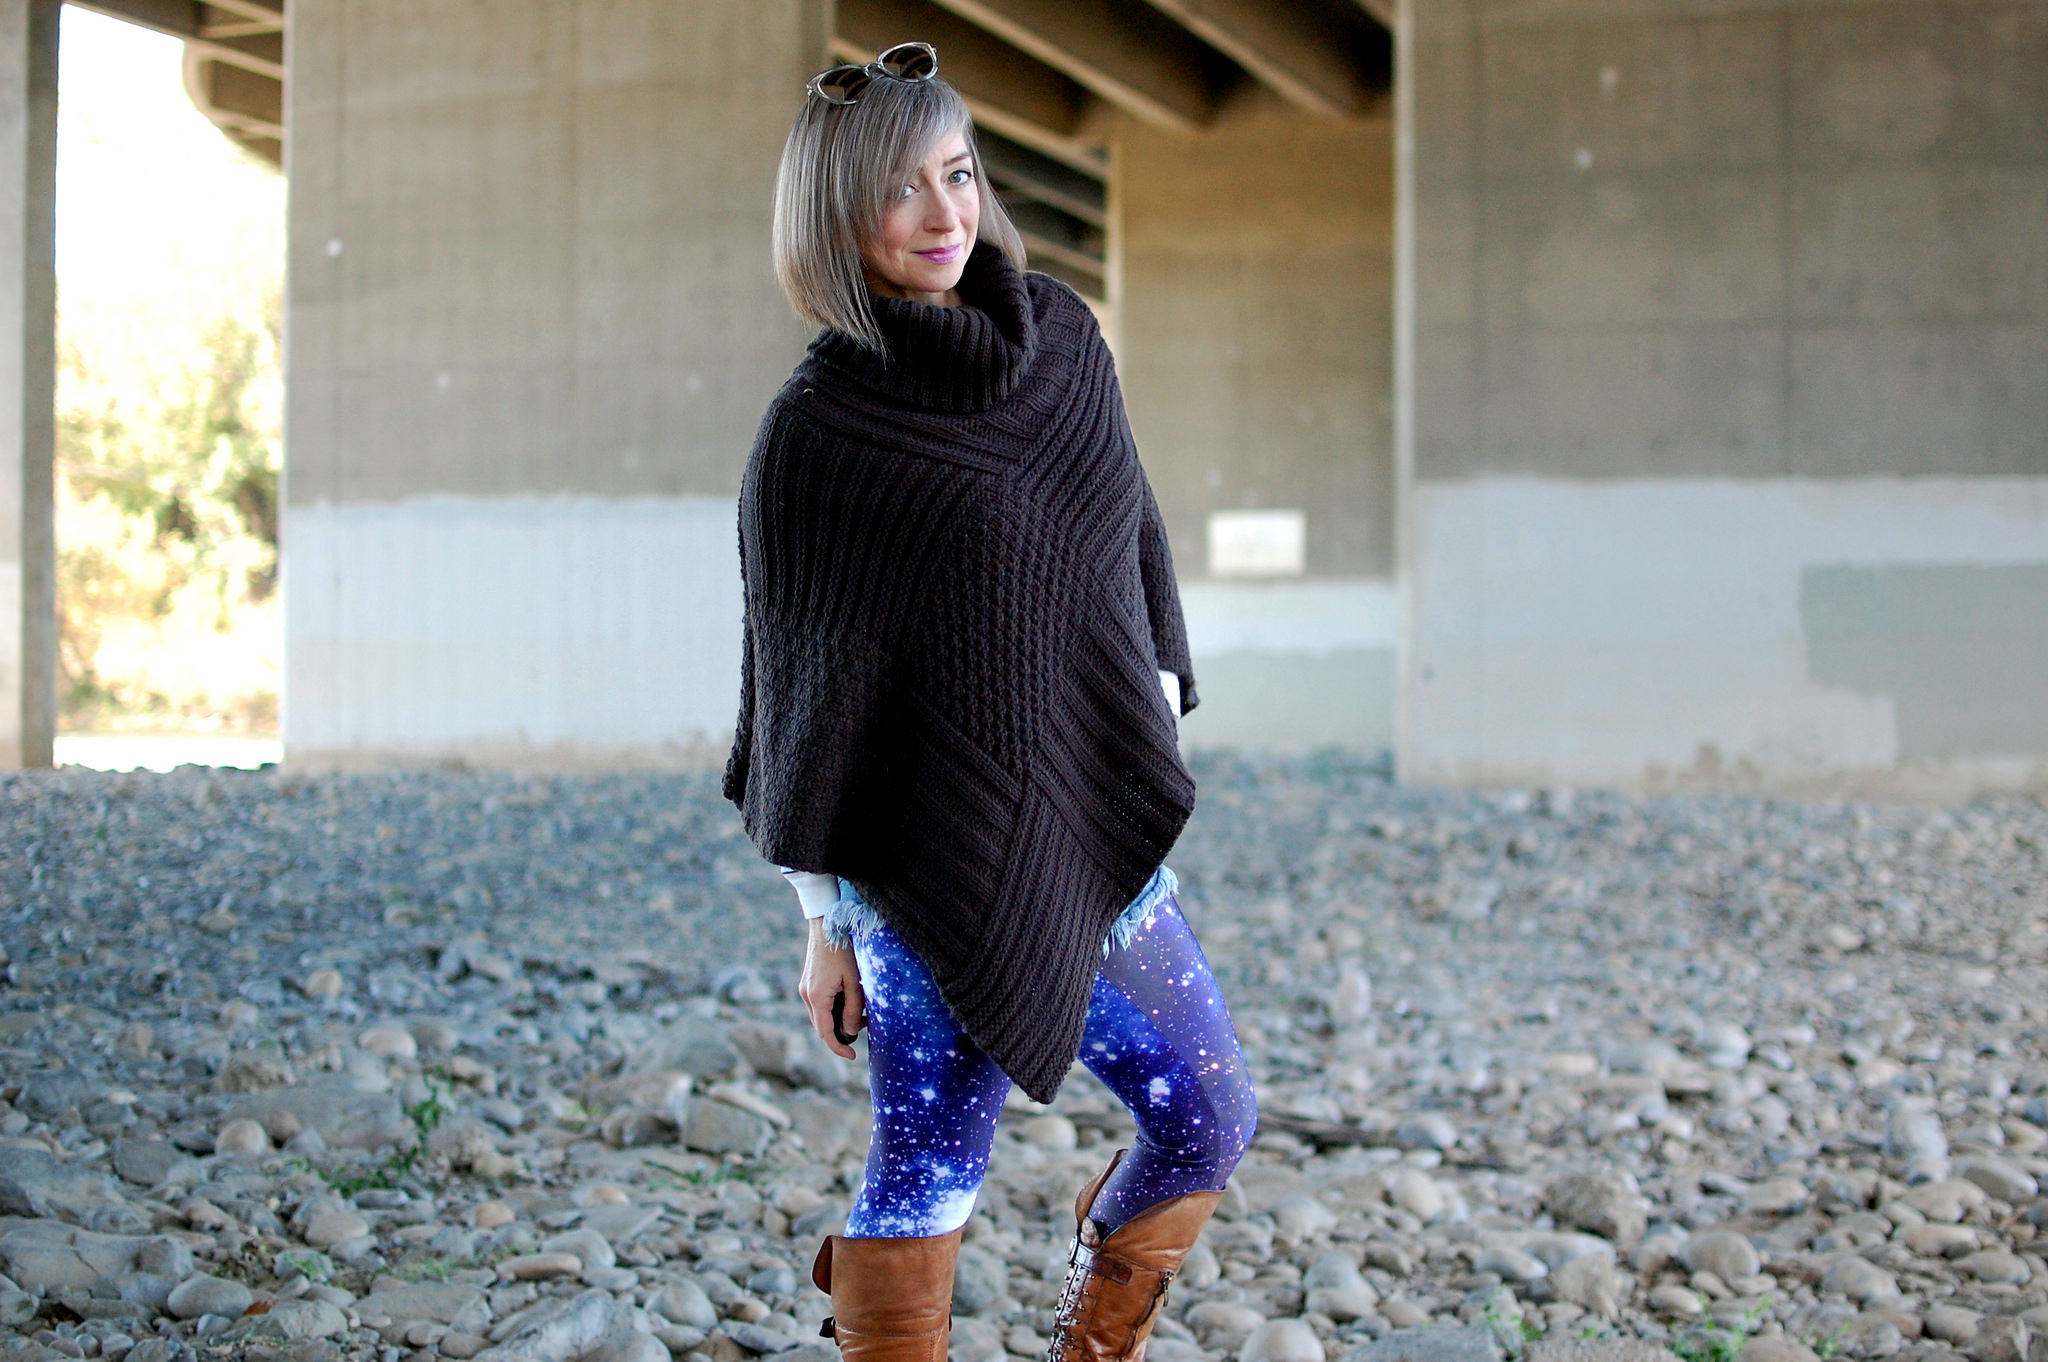 space galactic leggings poncho daily outfit blog ootd whatiwore2day